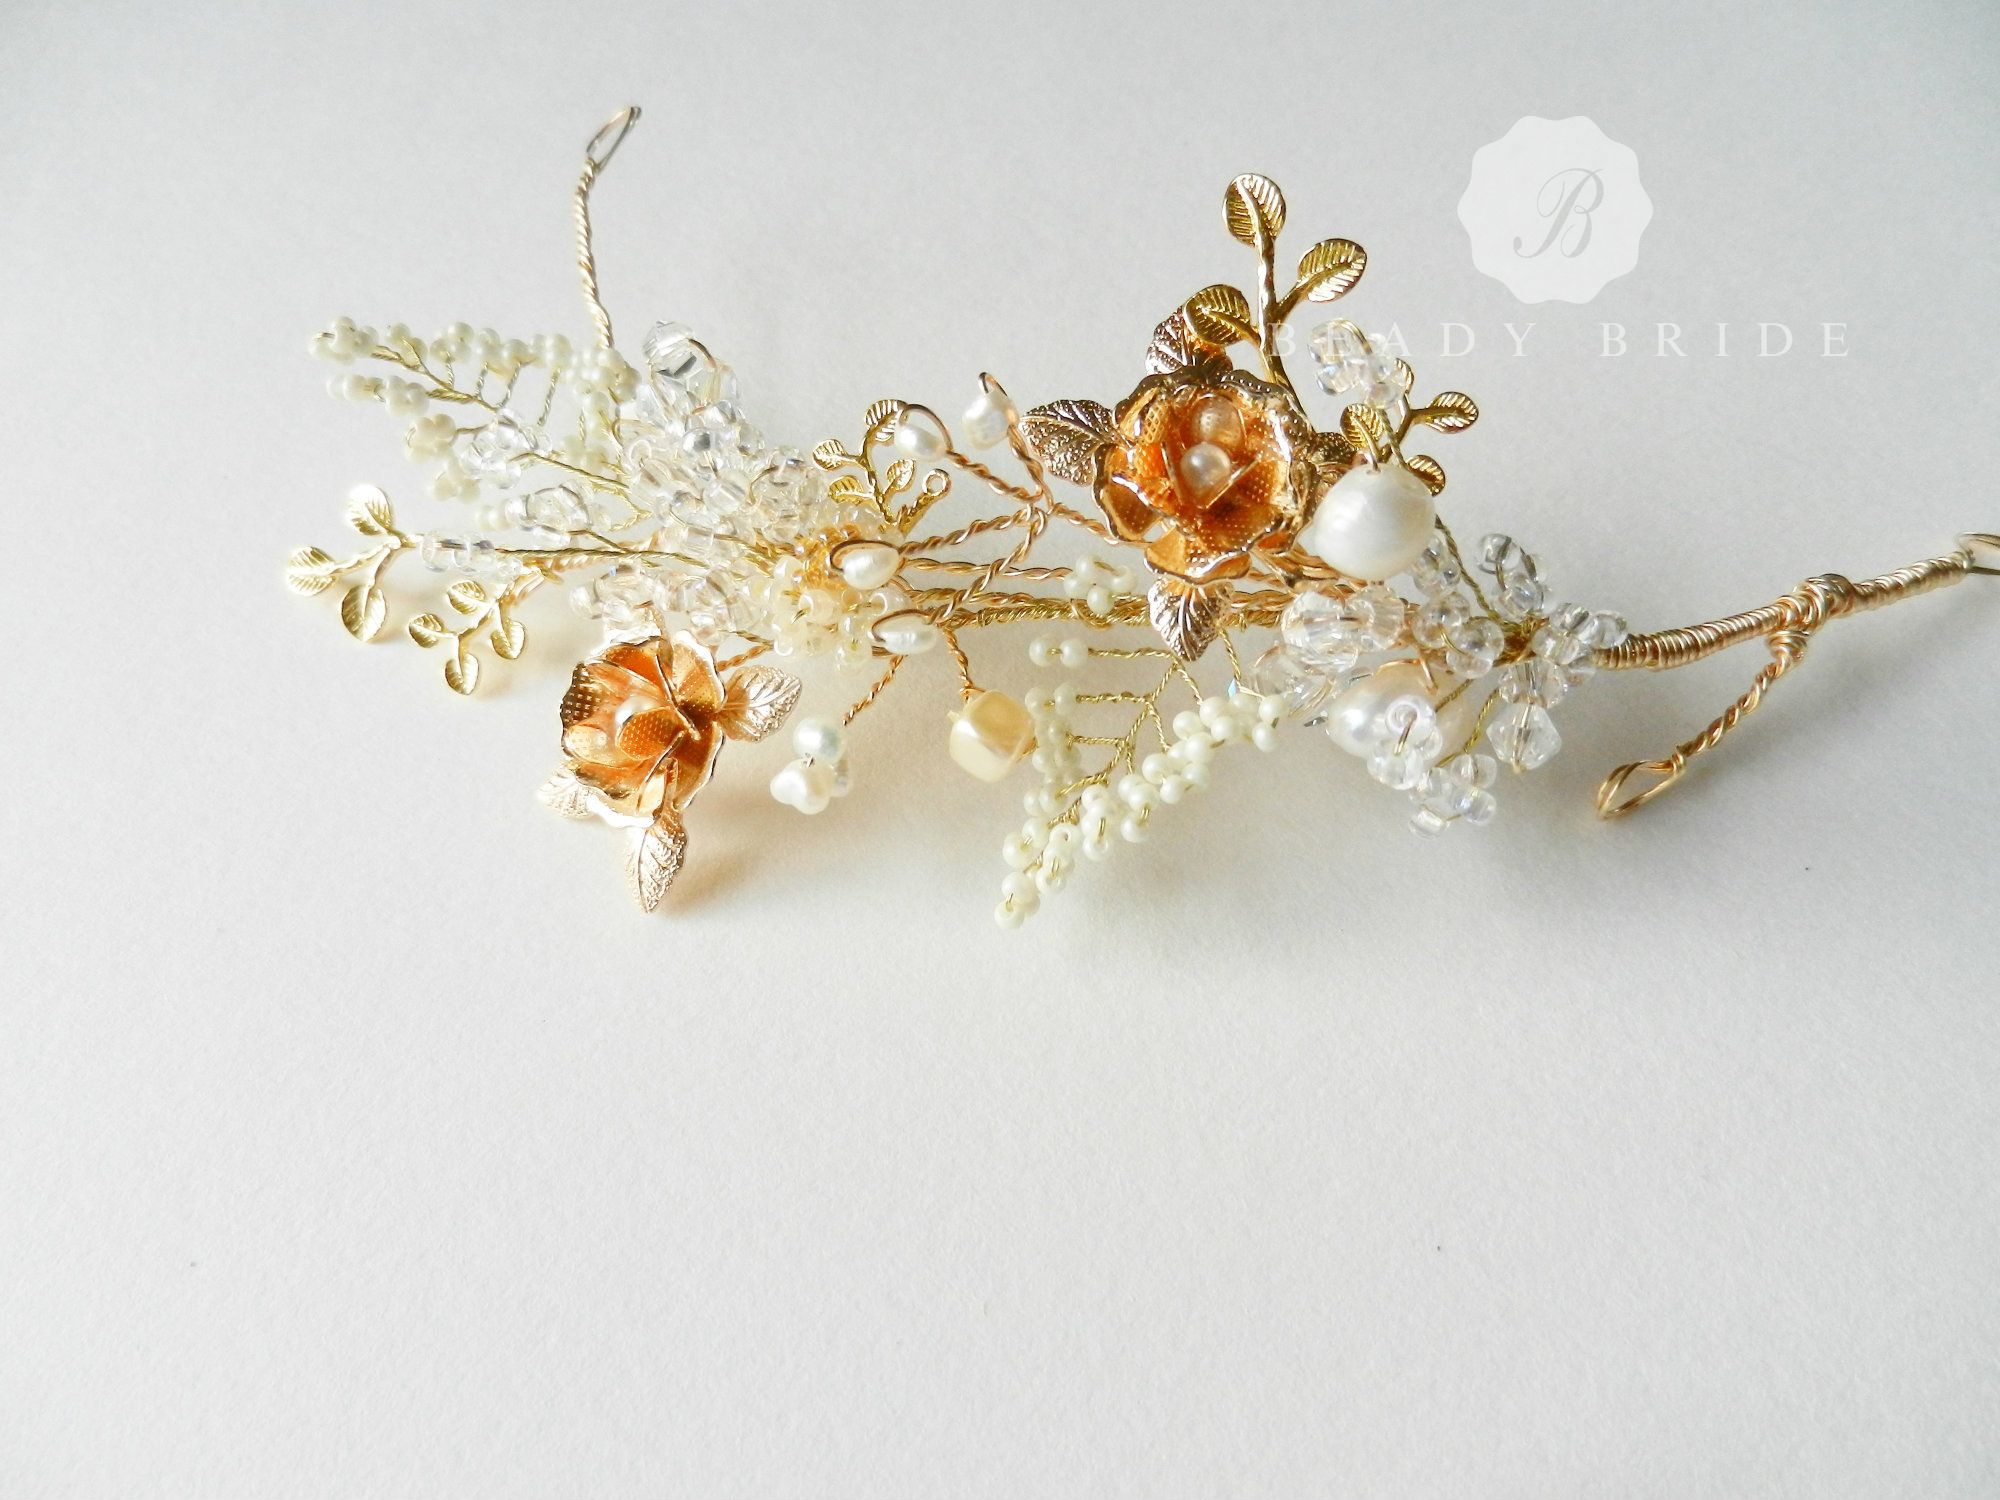 Delicate and unique bridal Hair accessories by Beady Bride-UK